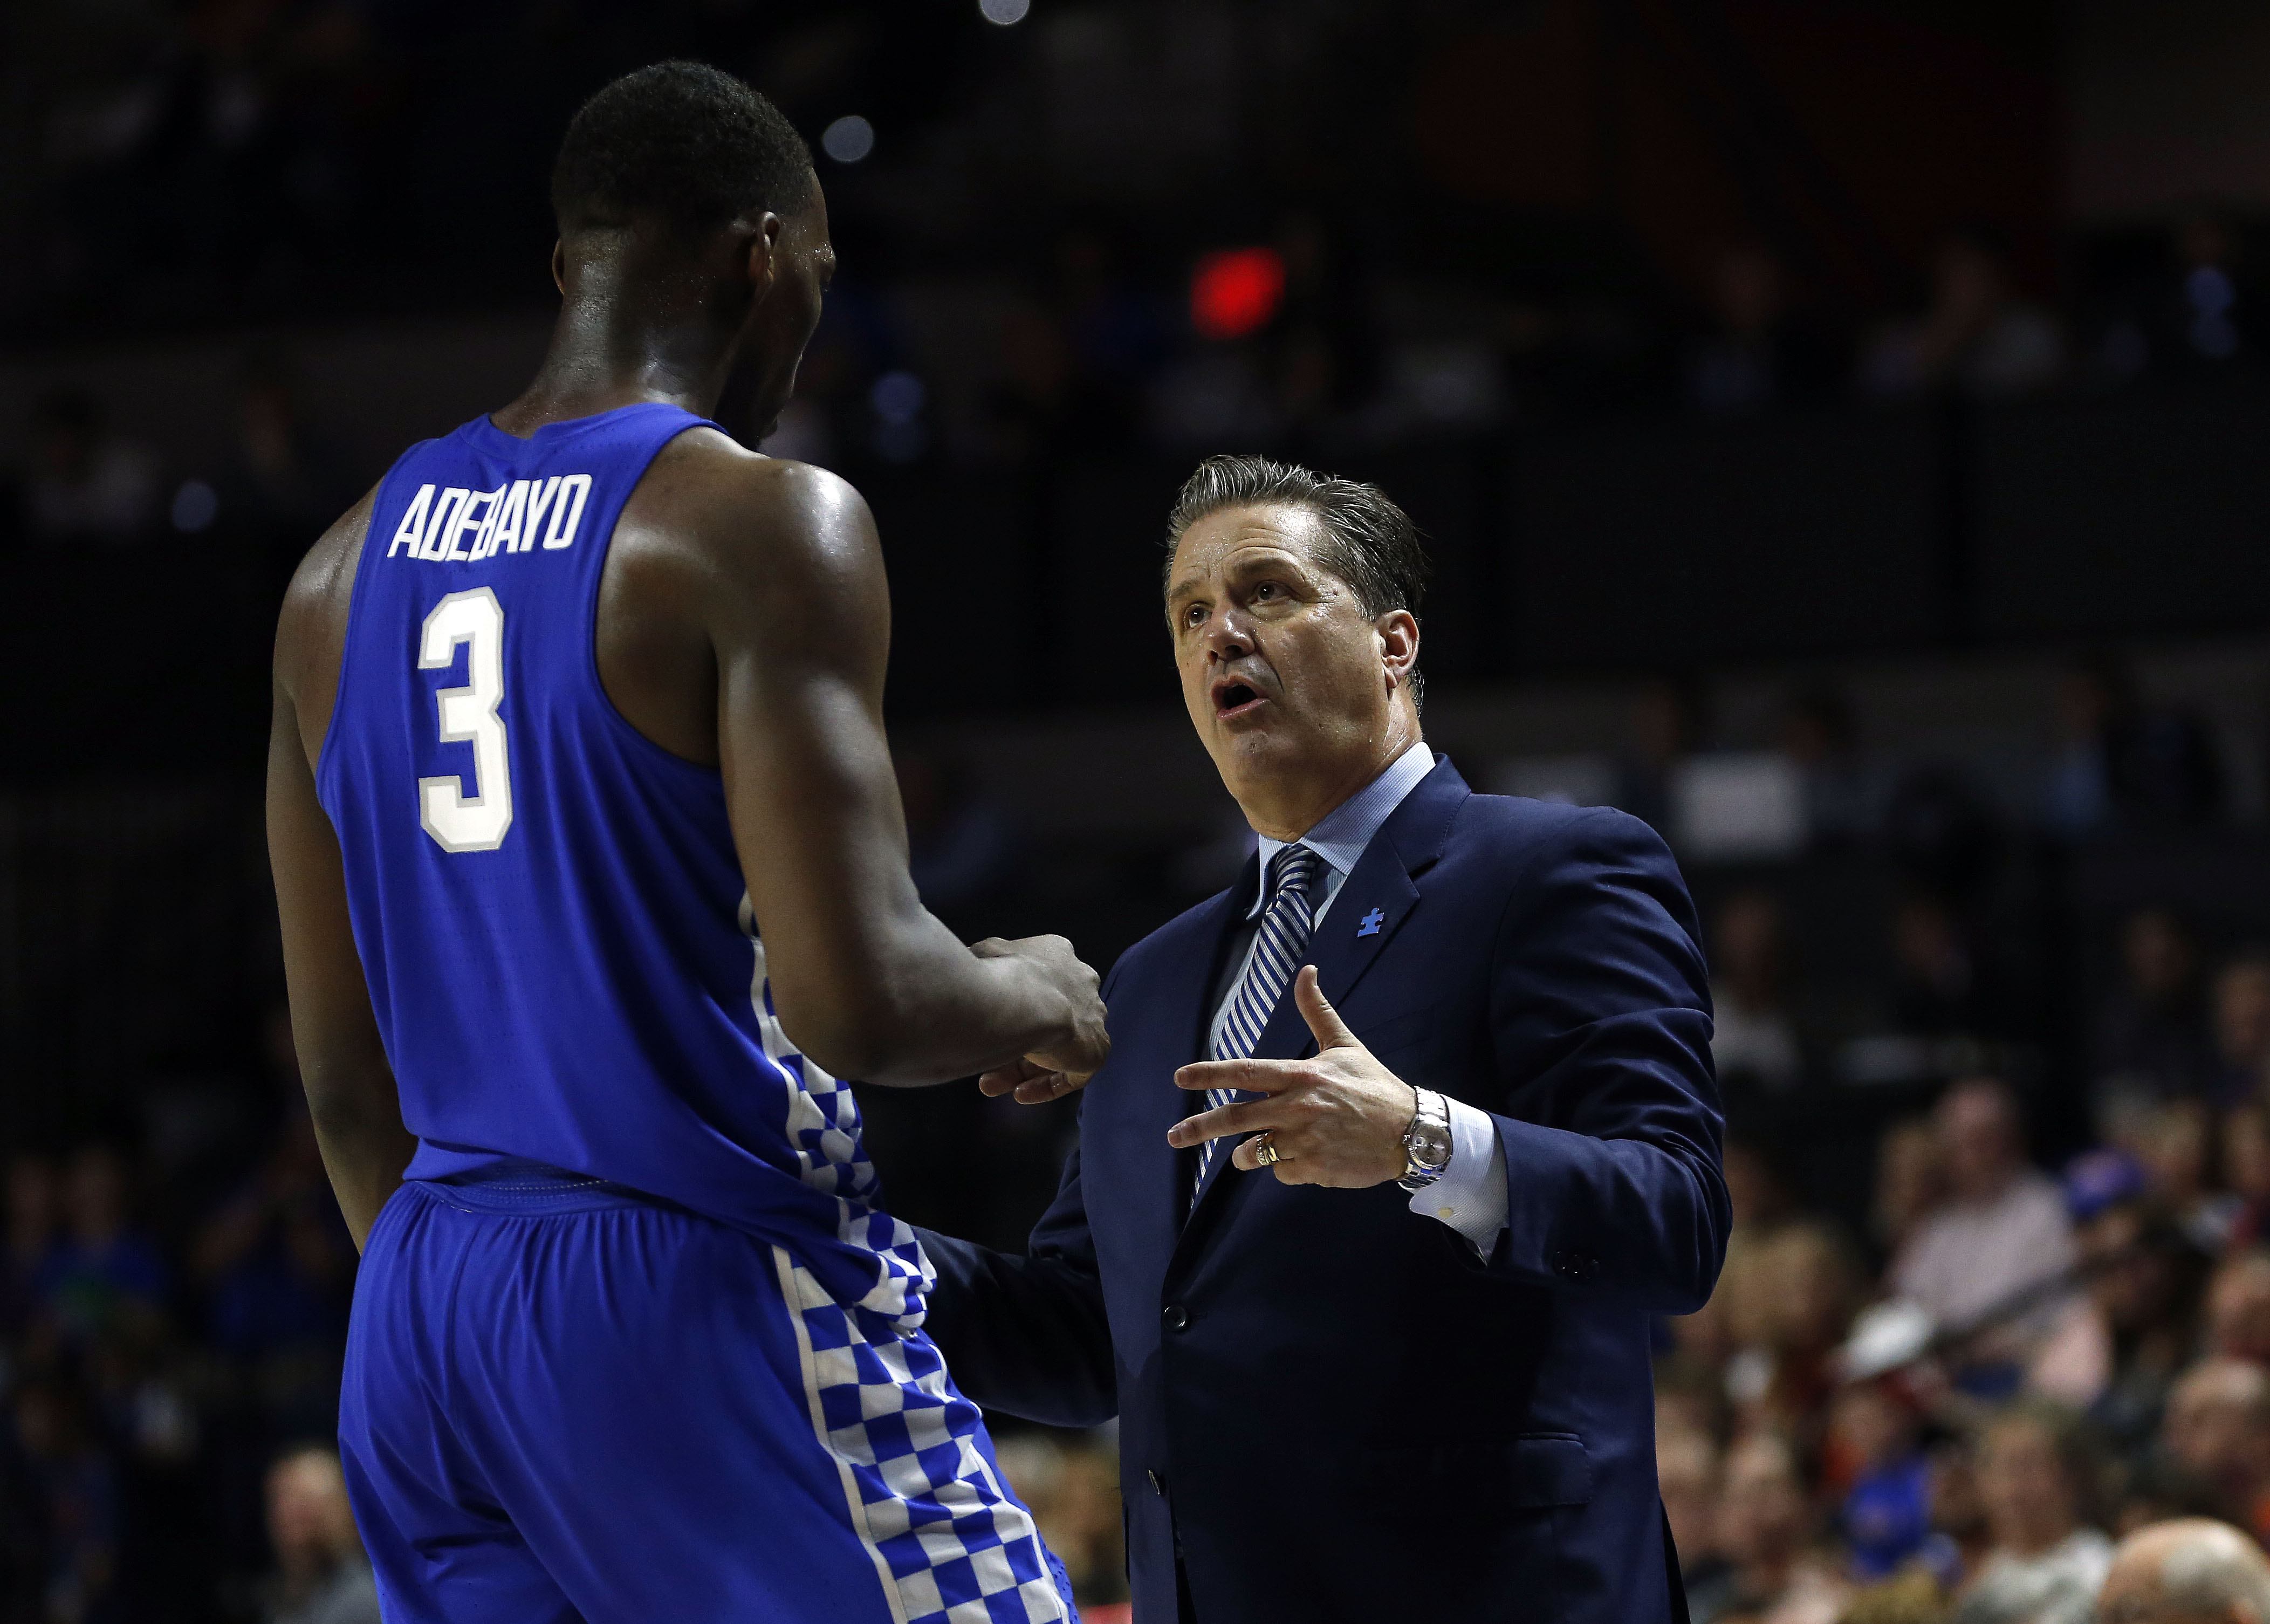 Kentucky Basketball 3 Concerns After Wildcats Home Loss: All For Tennessee Men's Basketball SEC Power Rankings For